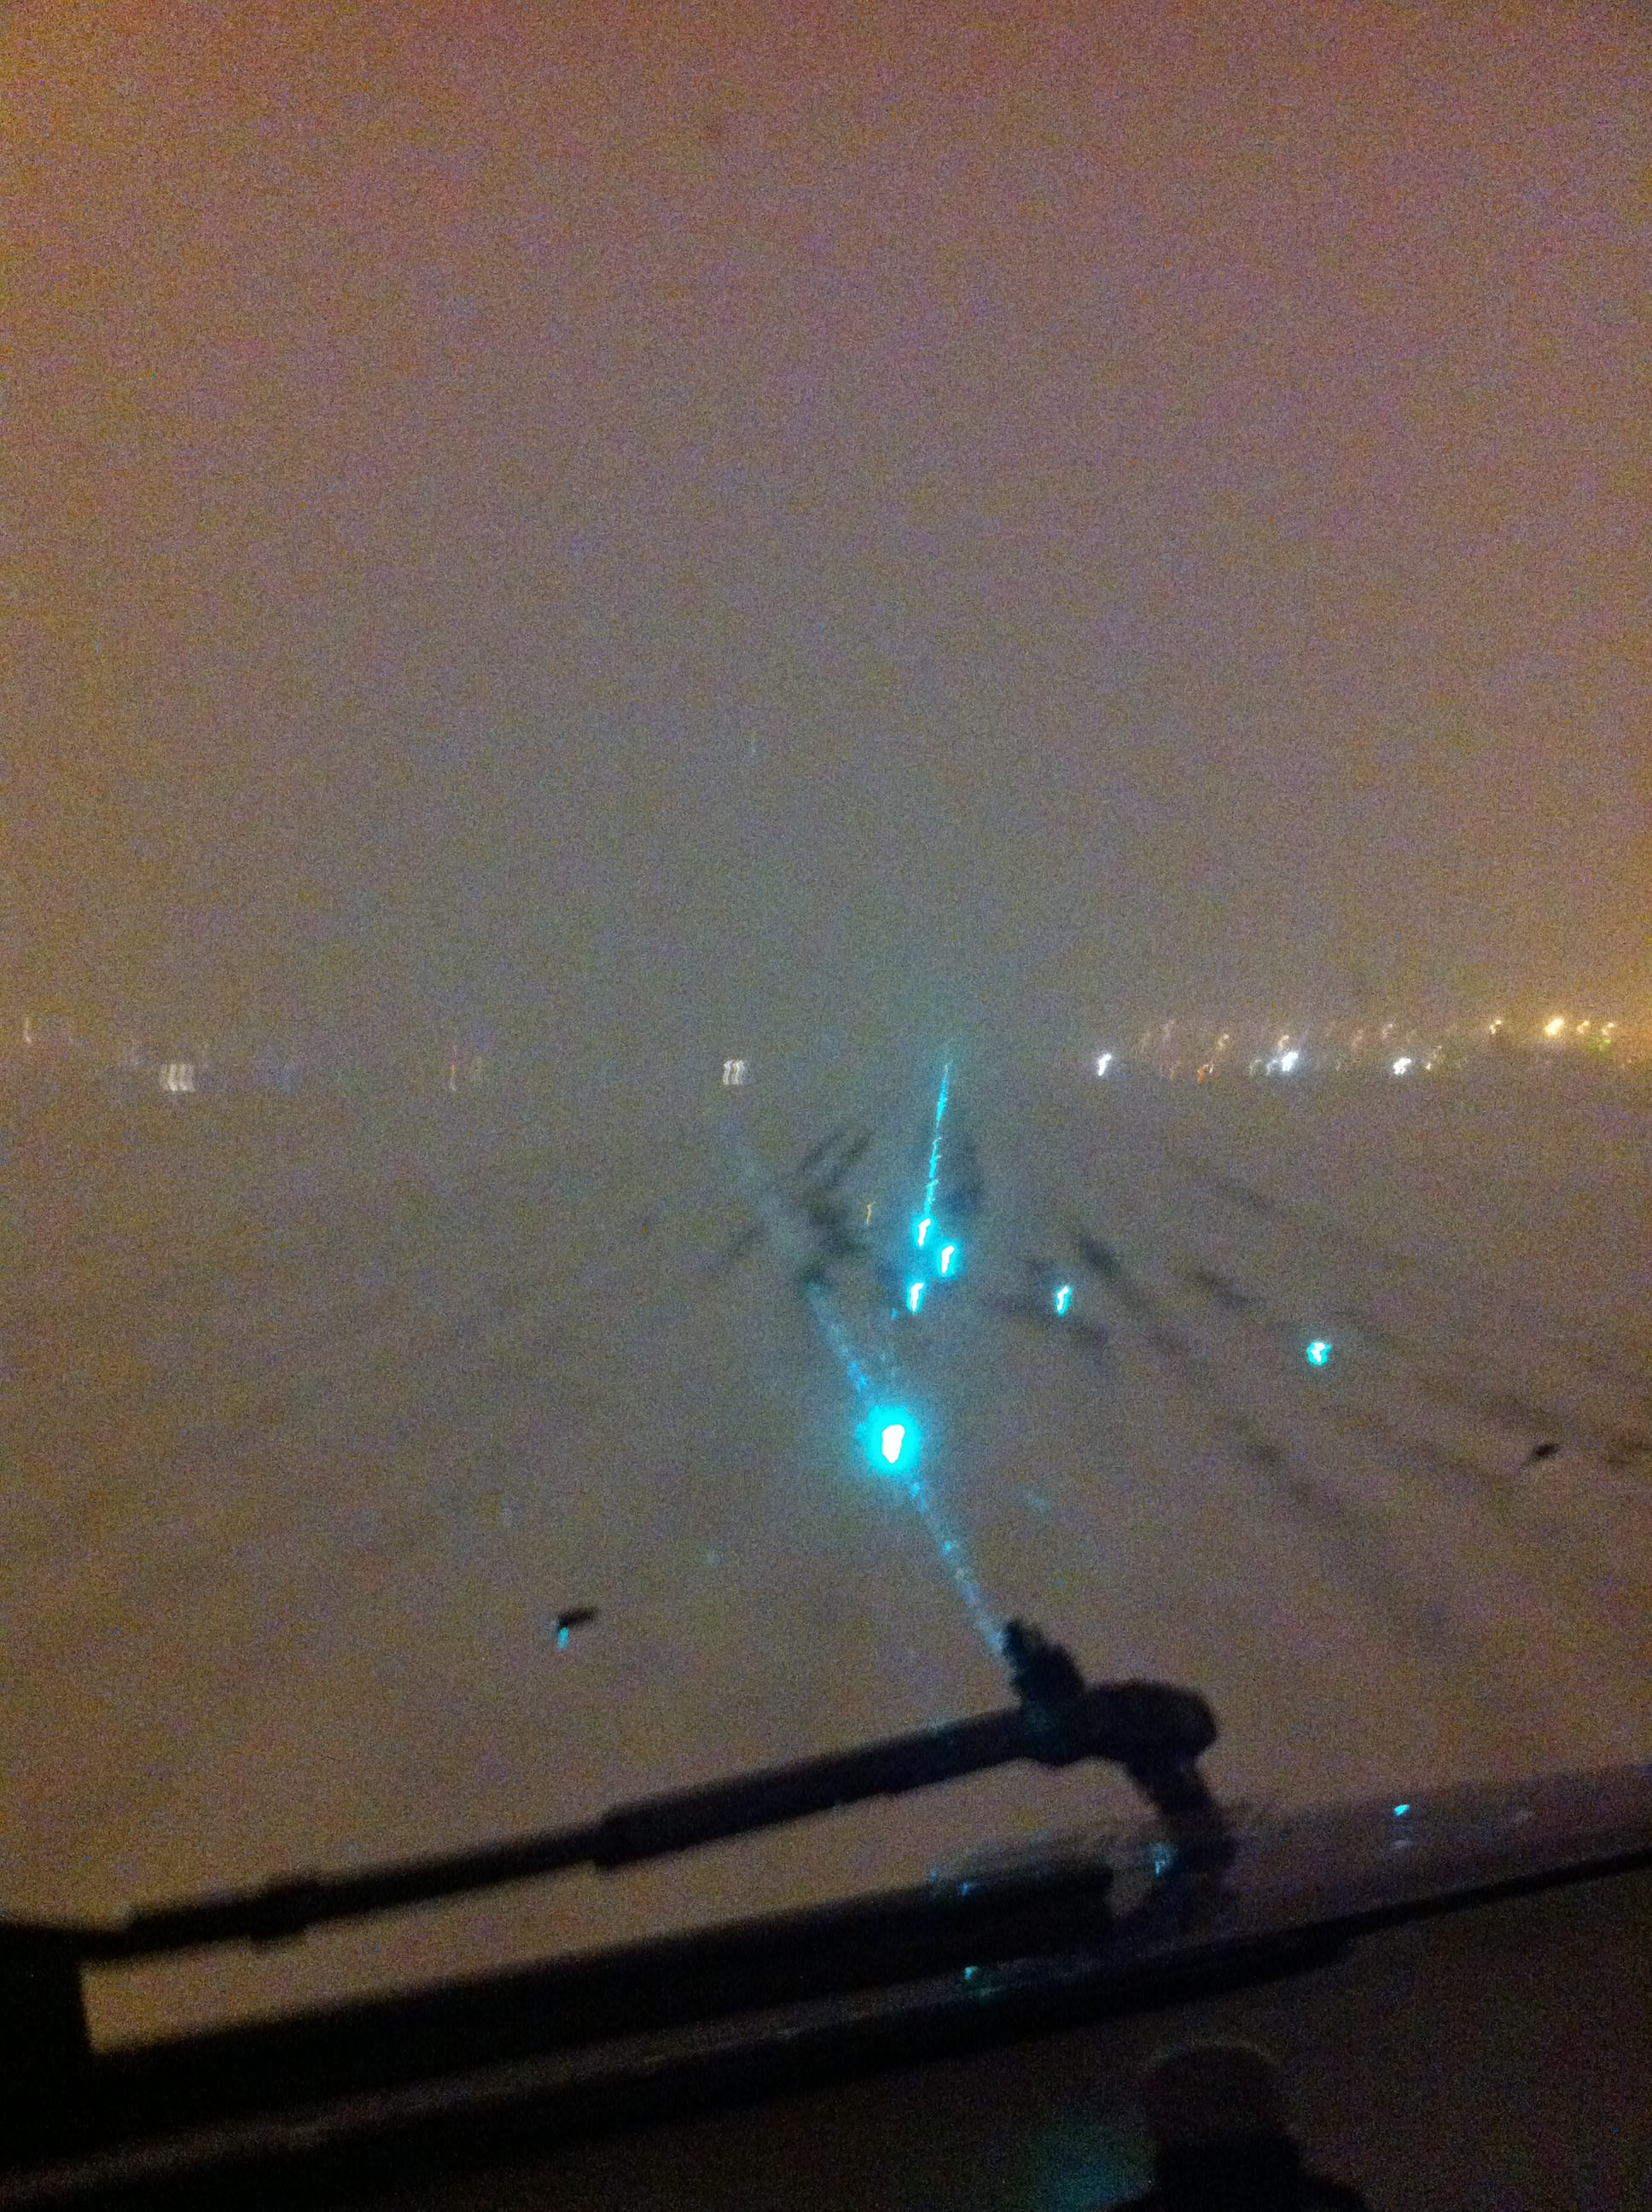 Whatever the visibility, the Boeing-737-800 at my airline is landed by hand.